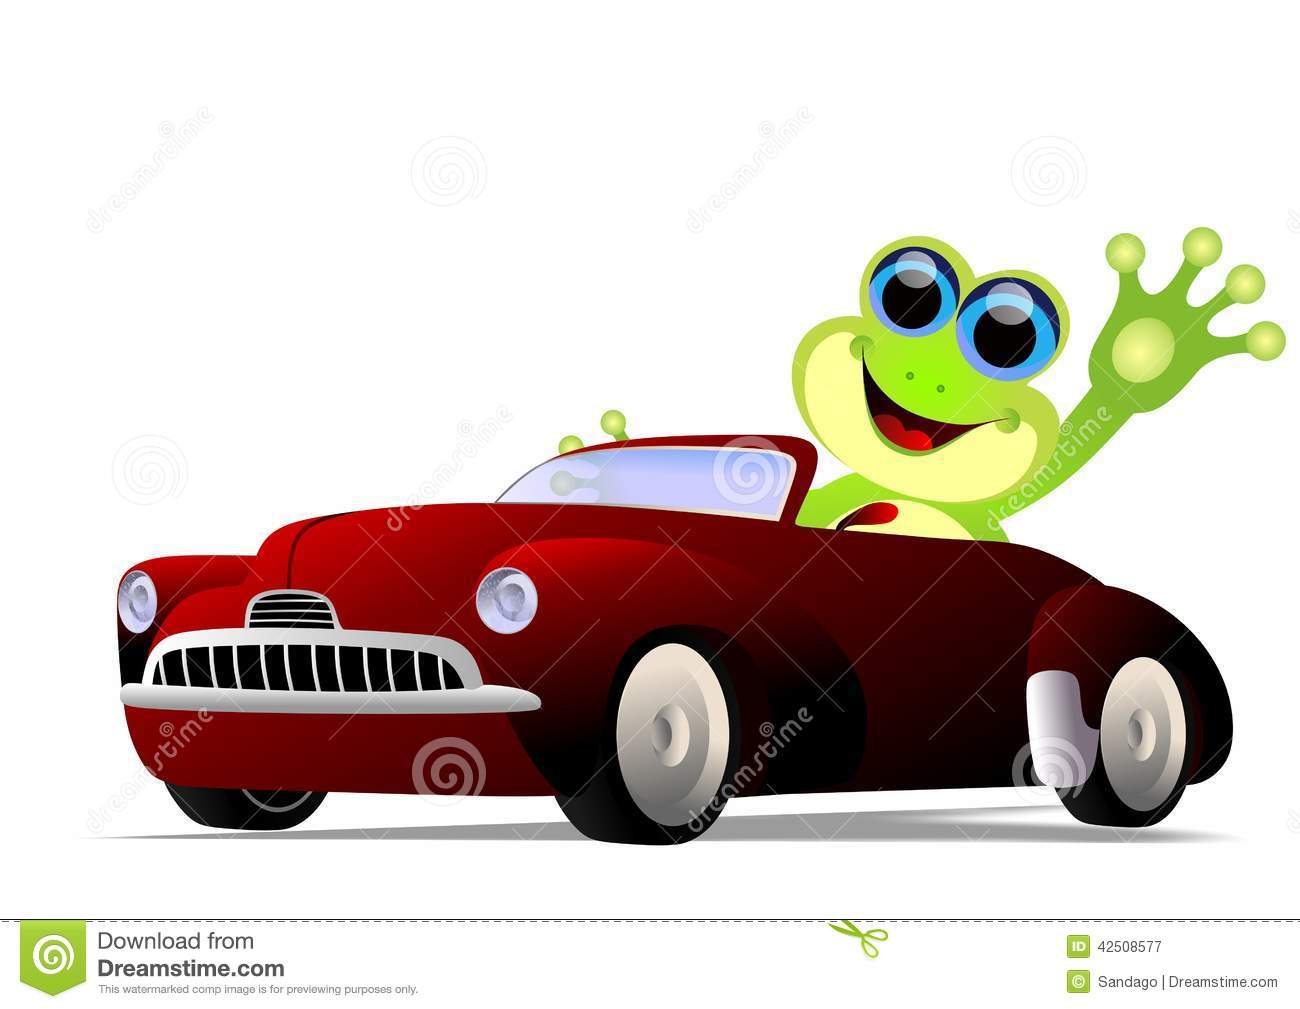 Vector illustration of frog waving while driving a car .